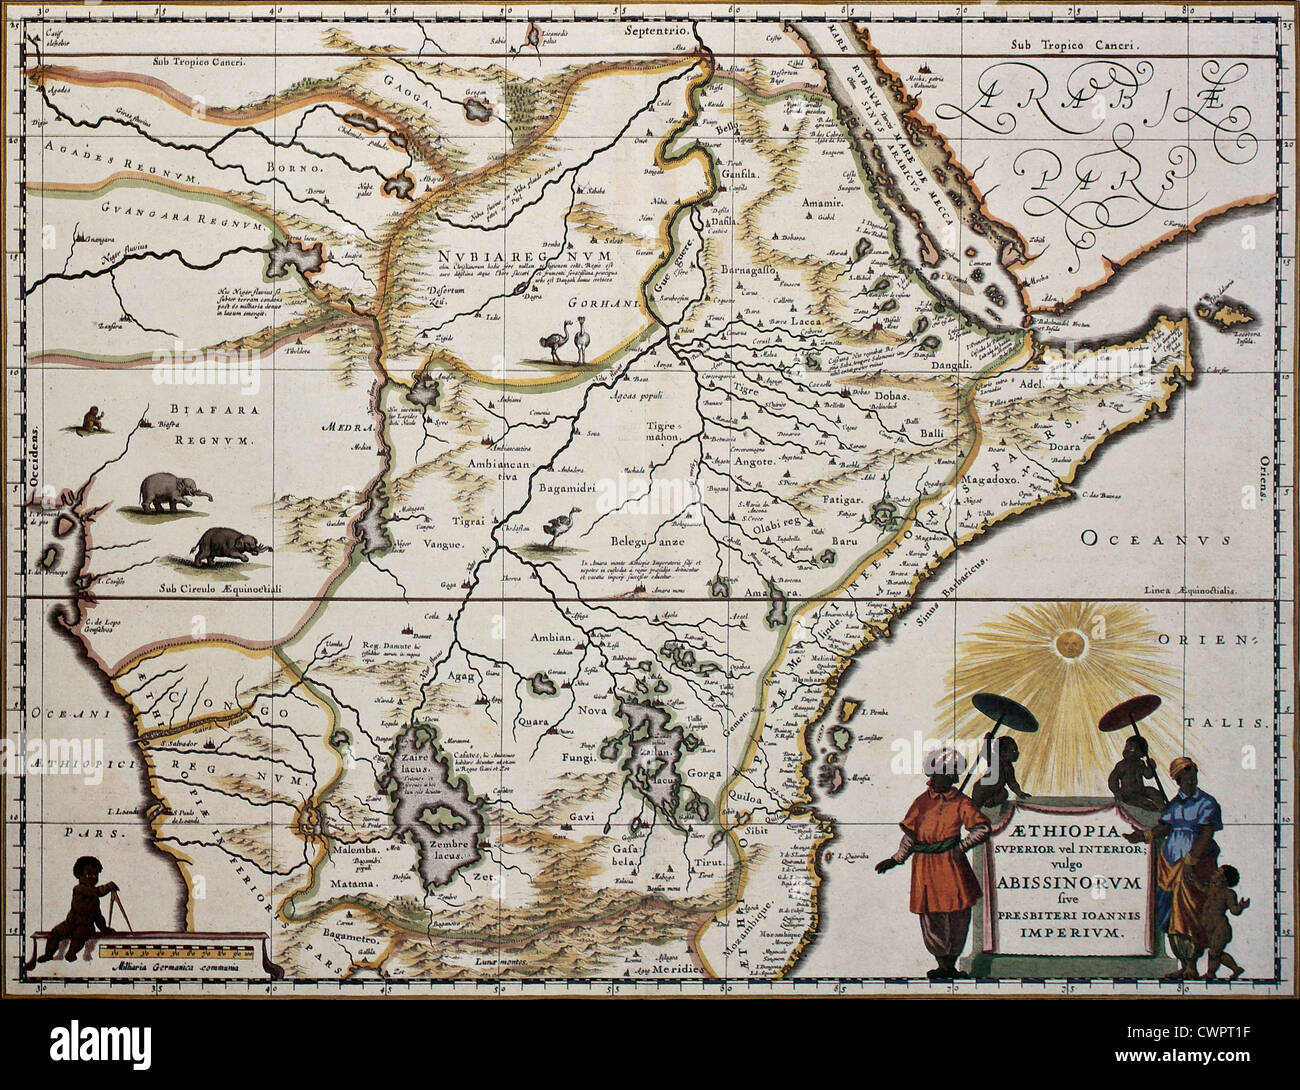 Old Map Of Ethiopia Stock Photos & Old Map Of Ethiopia Stock Images